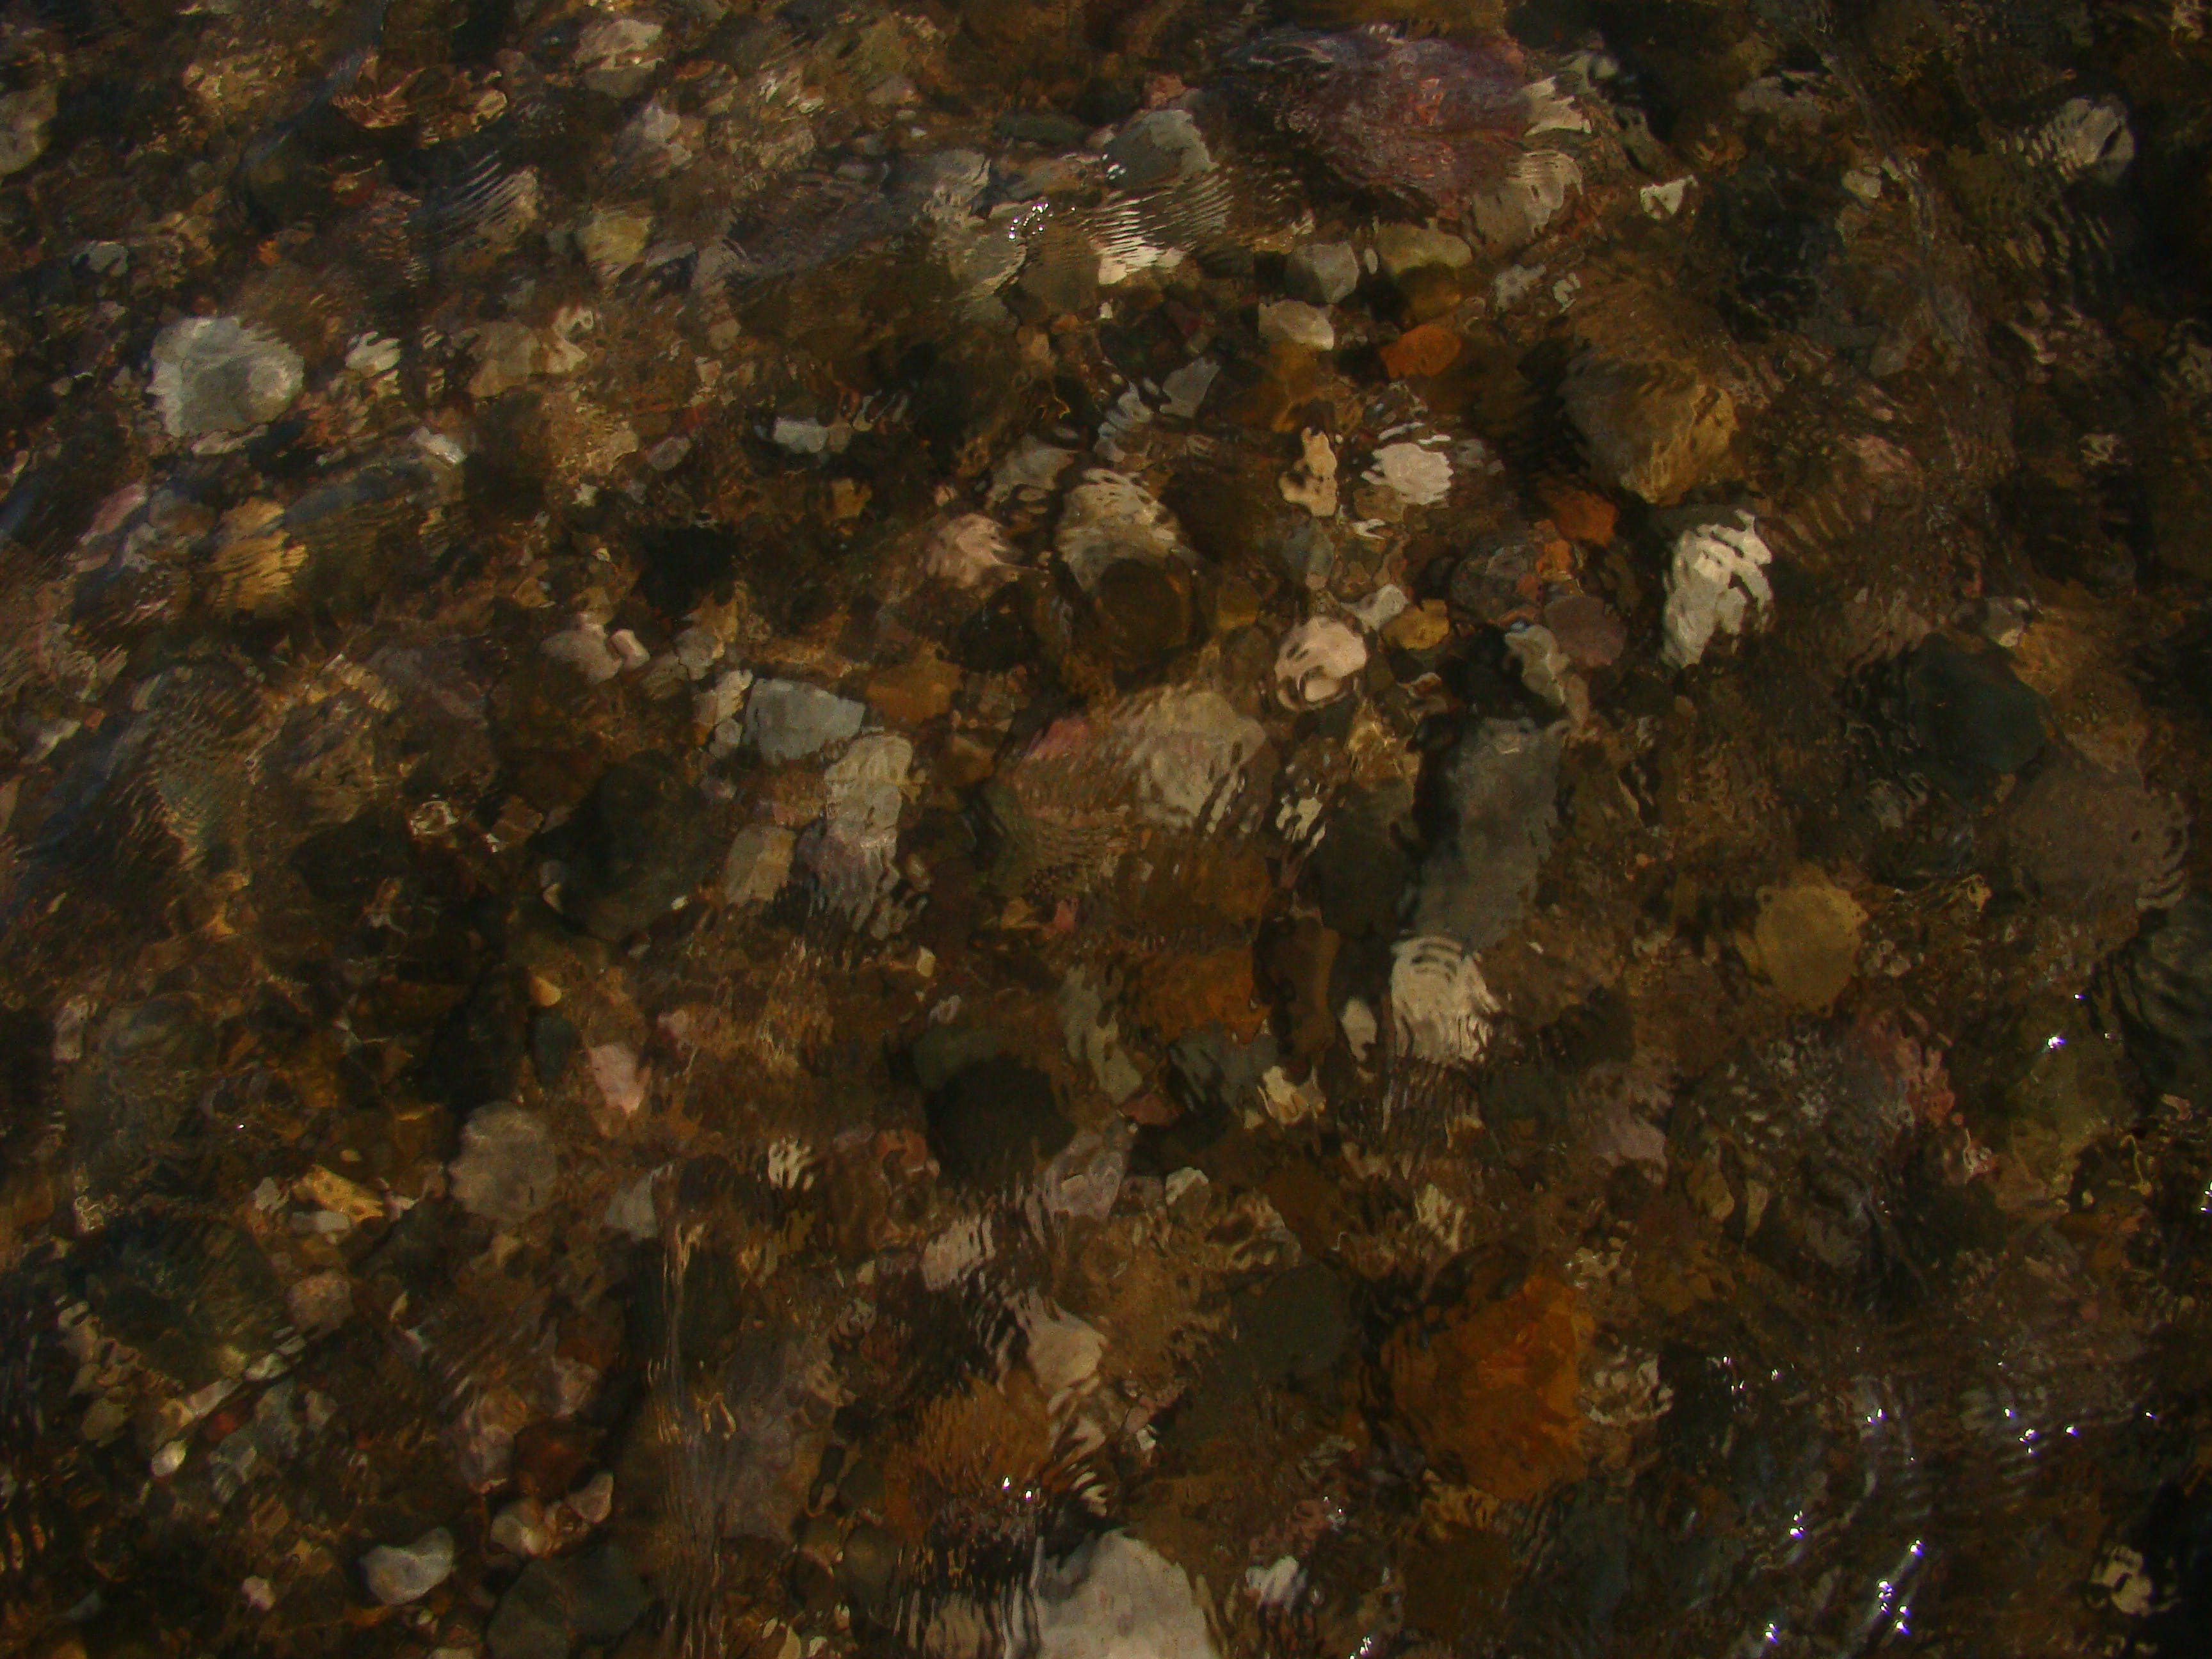 Free stock photo of texture, under water